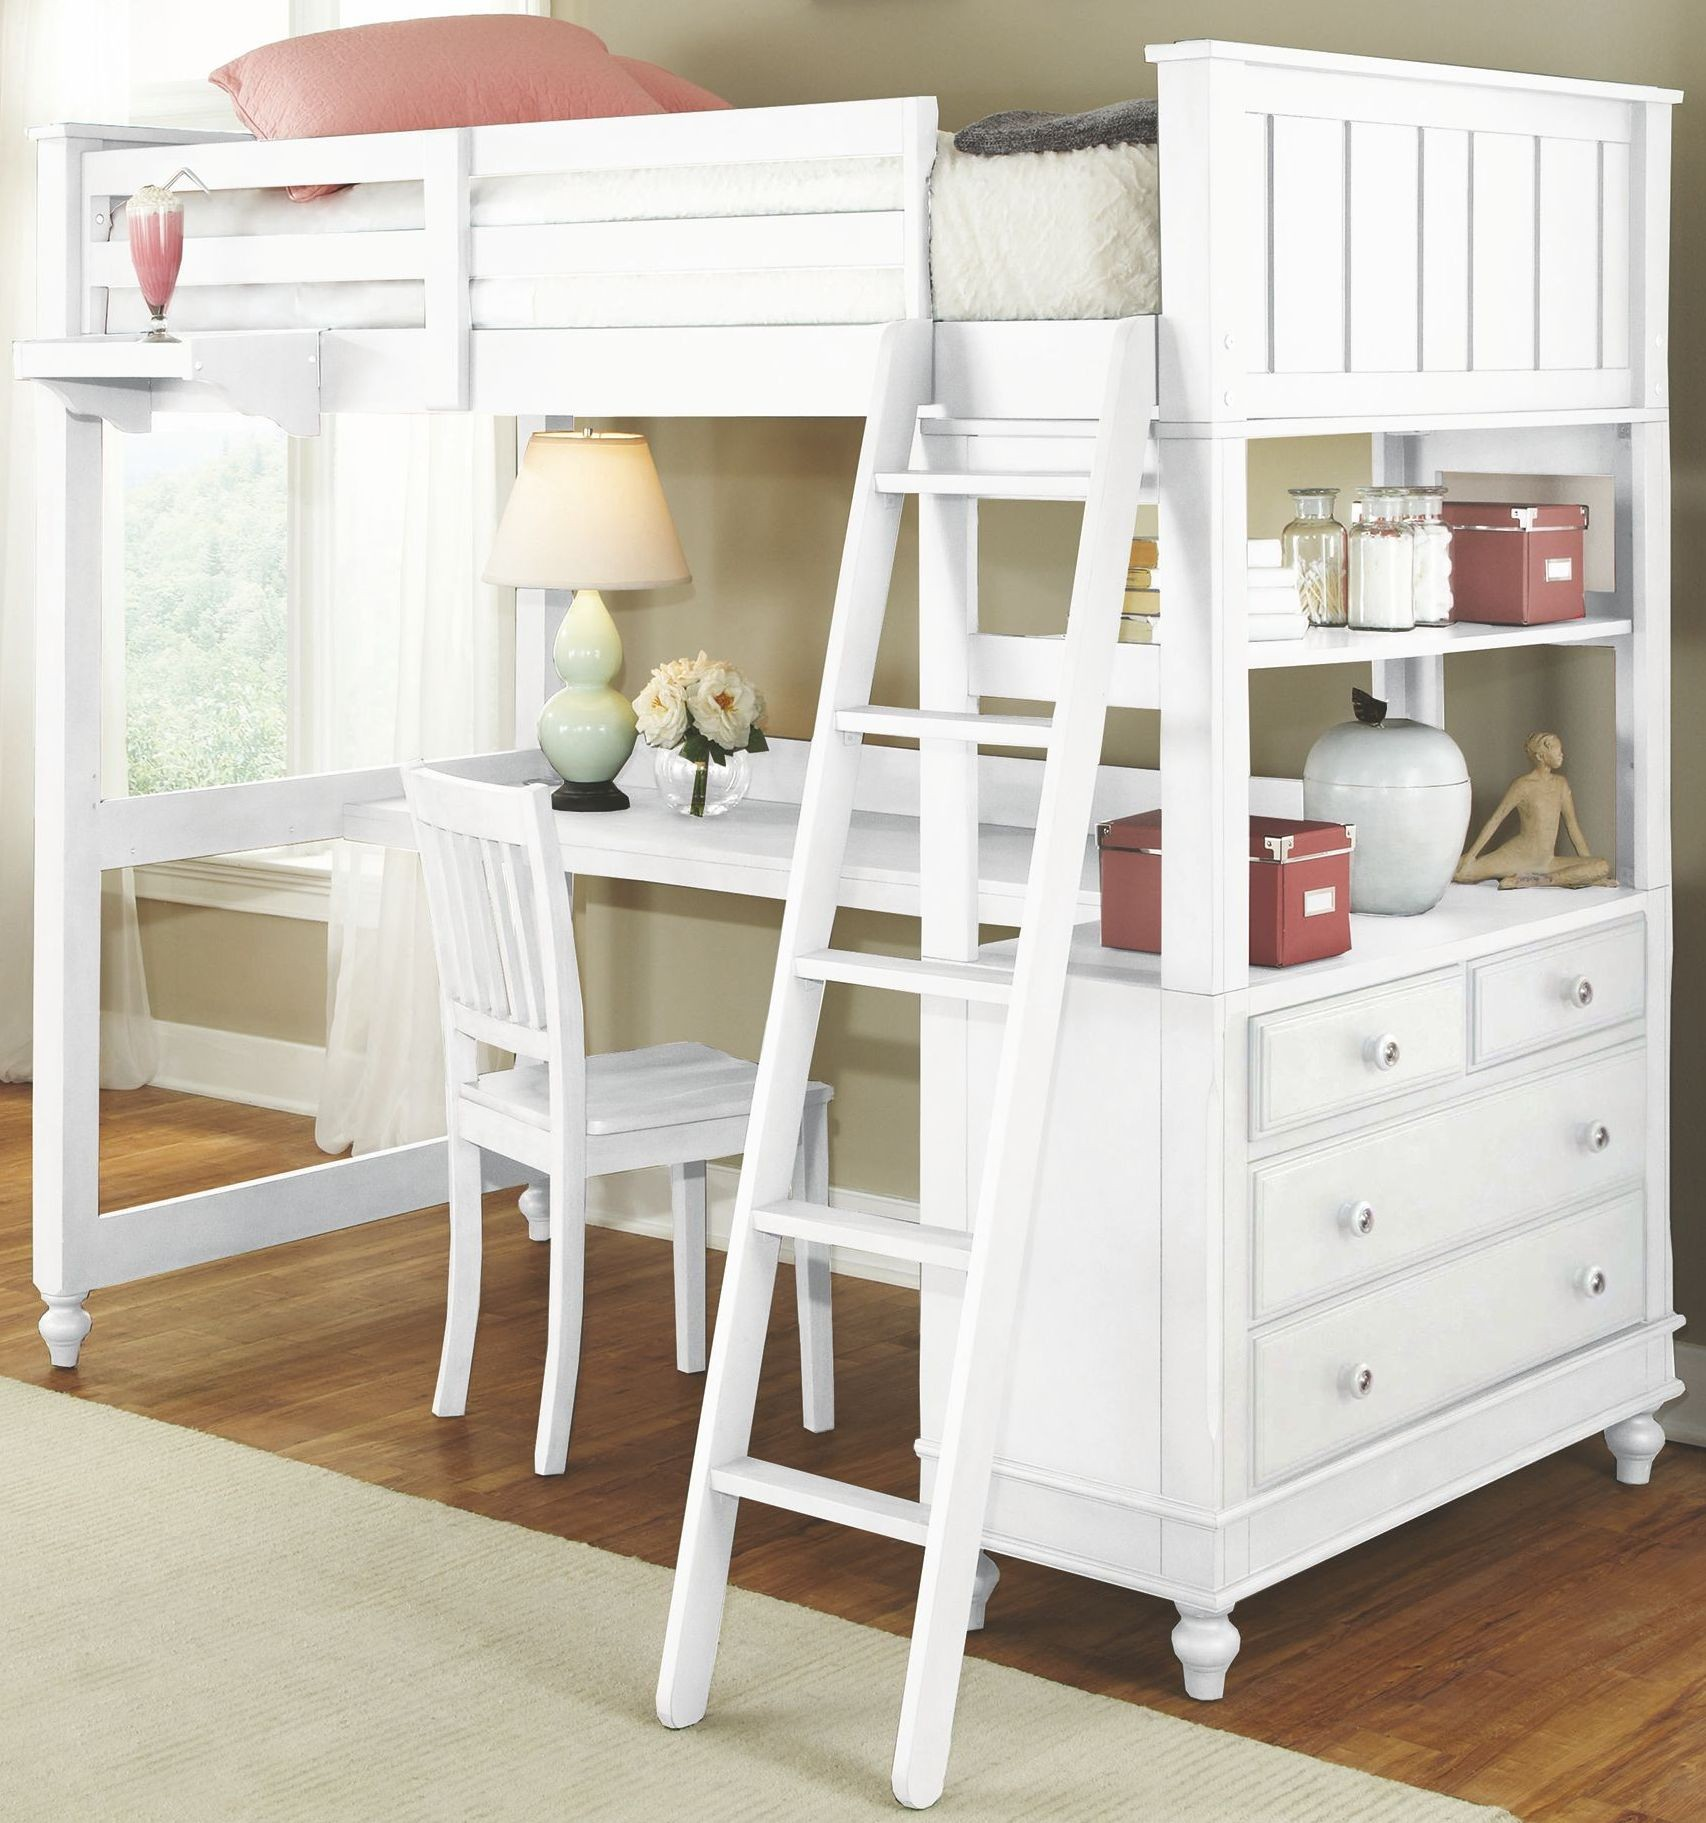 lake house white full loft bed with desk from ne kids coleman furniture. Black Bedroom Furniture Sets. Home Design Ideas